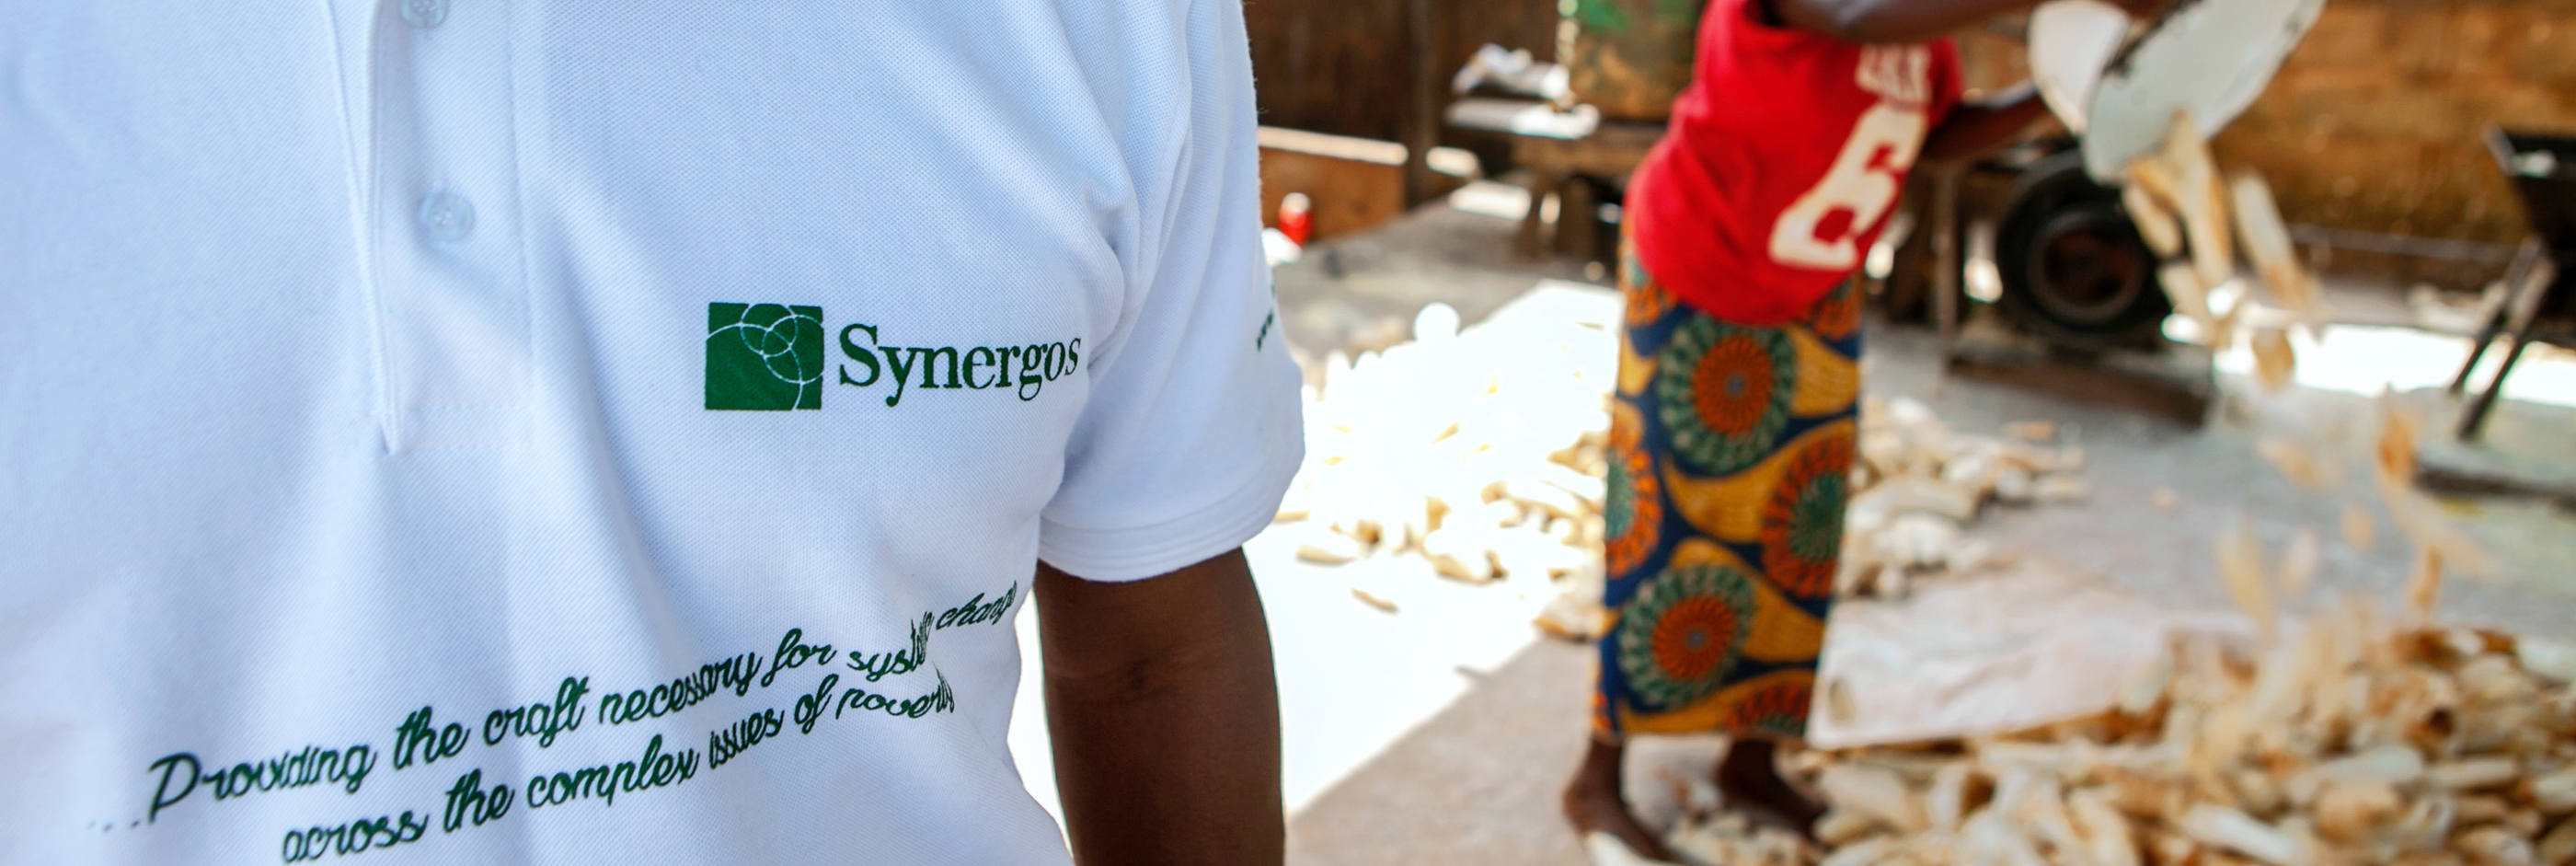 Synergos played a critical role in forging a strong, trusting relationship between Crest Agro and the smallholder farmers of Kogi state.